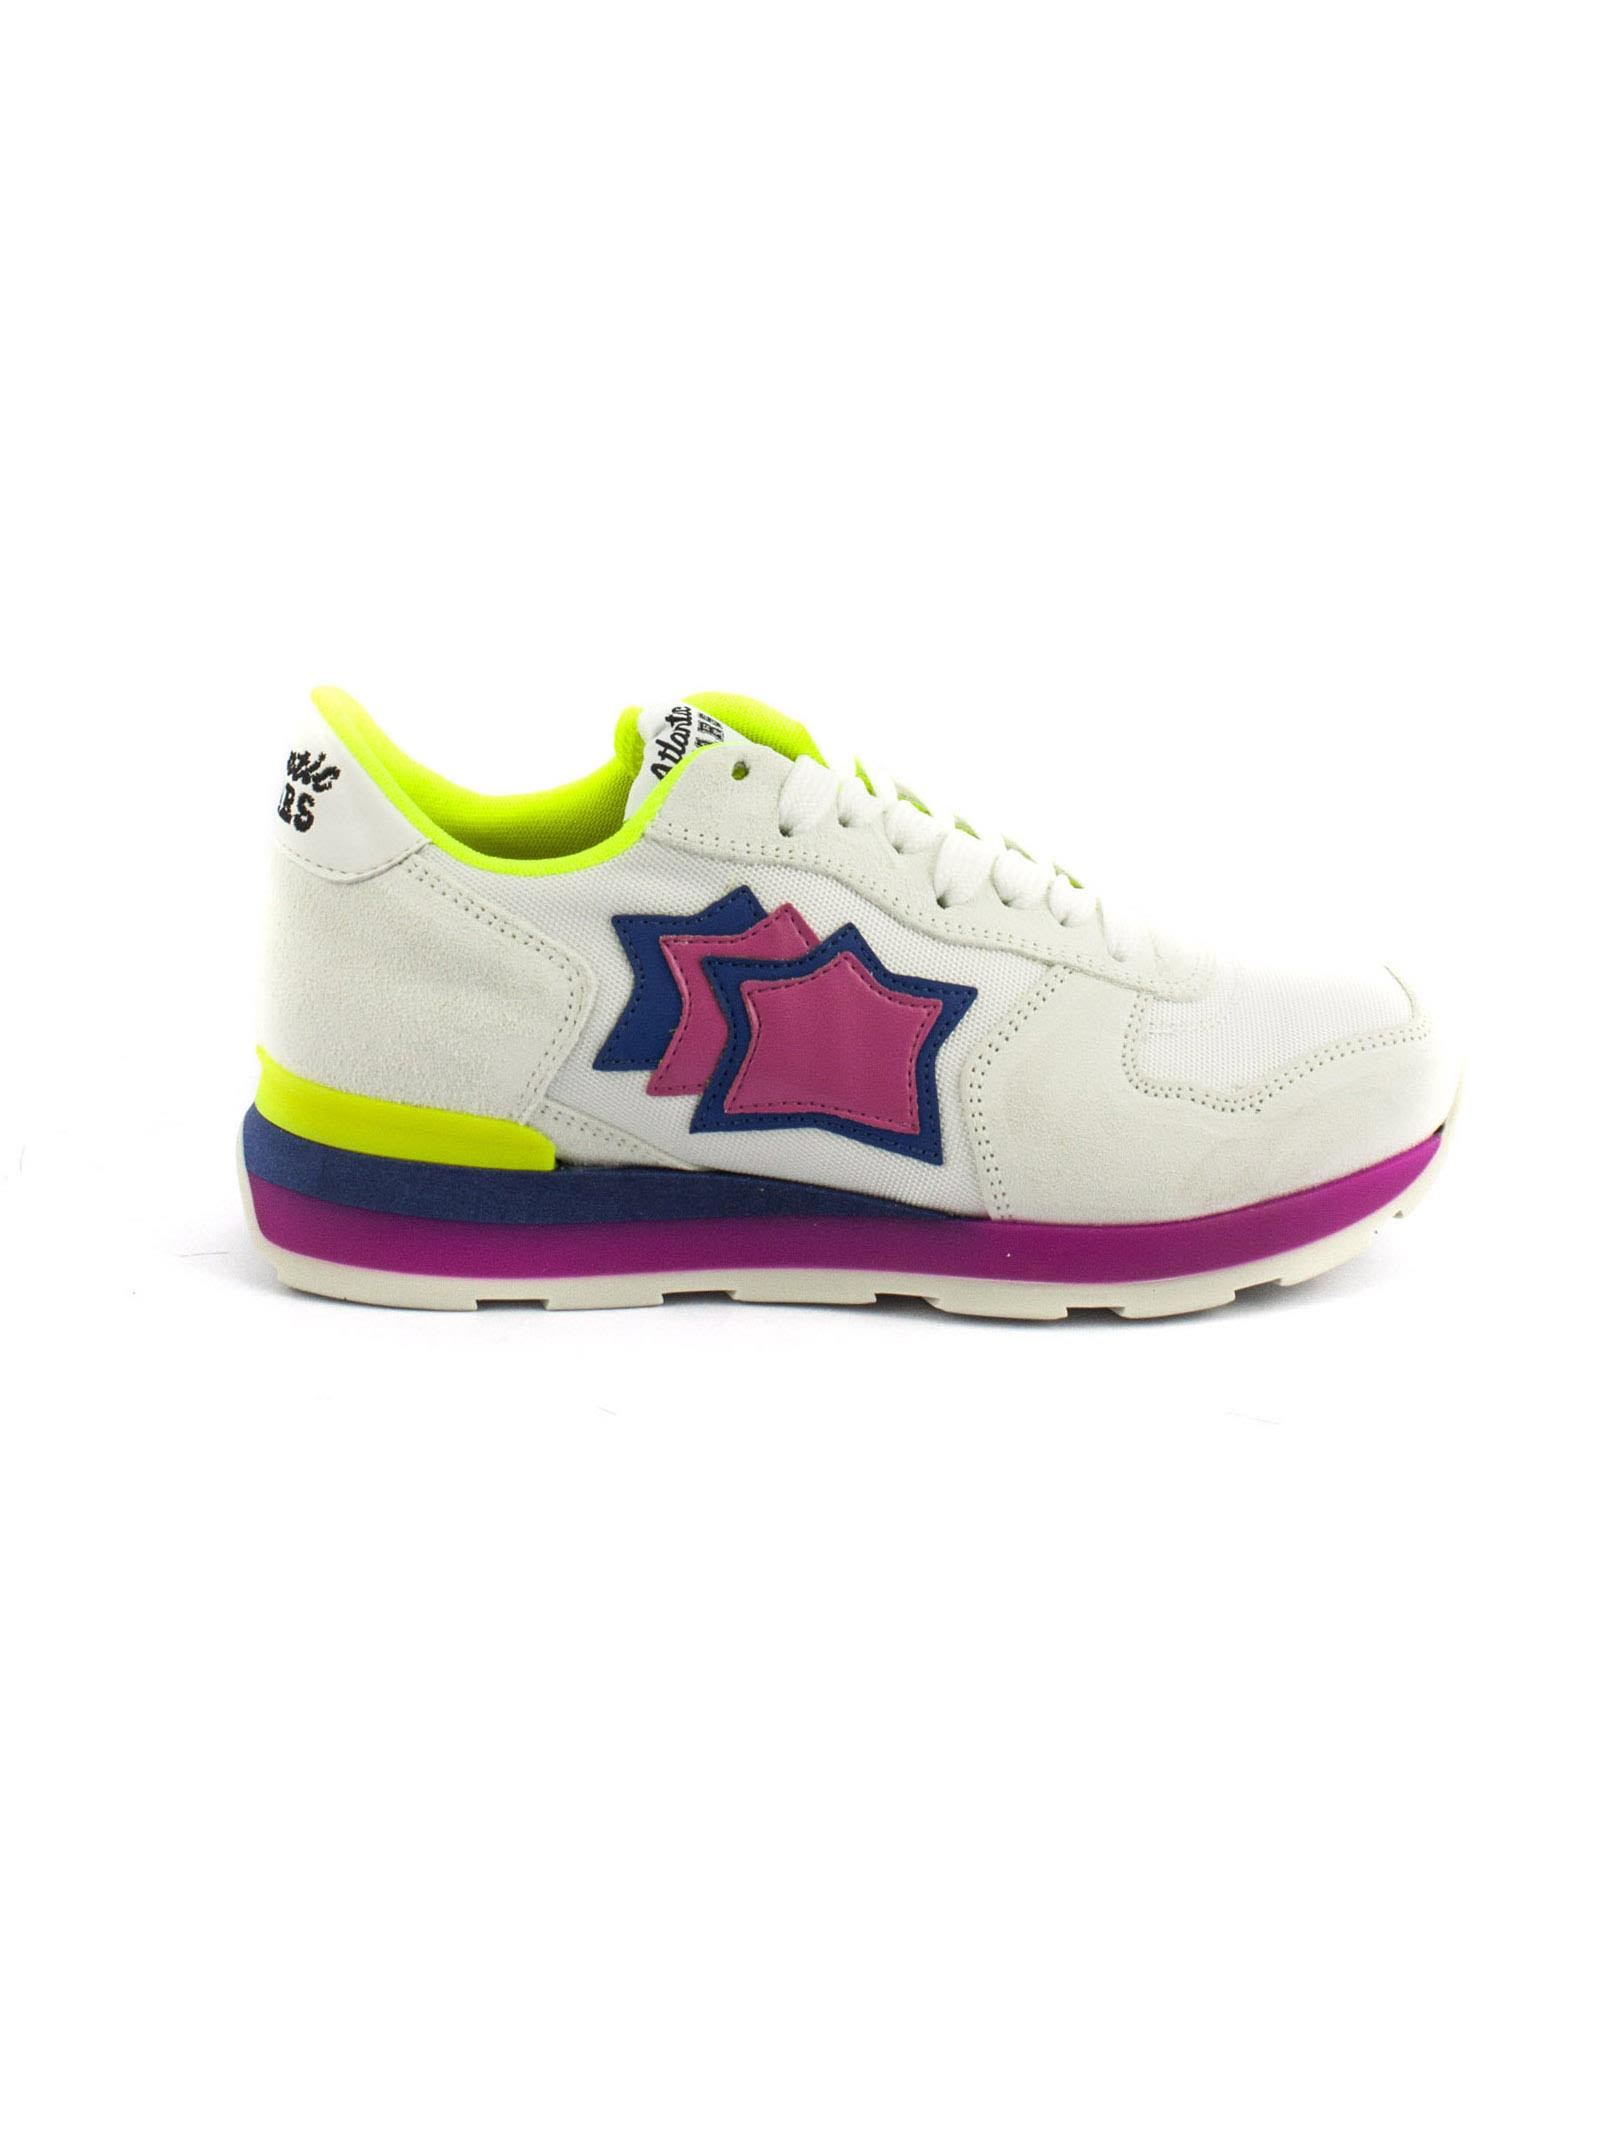 Atlantic Stars Vega In White Suede And Fabric Sneaker Very Cheap Sale Online With Mastercard Online pCulVy